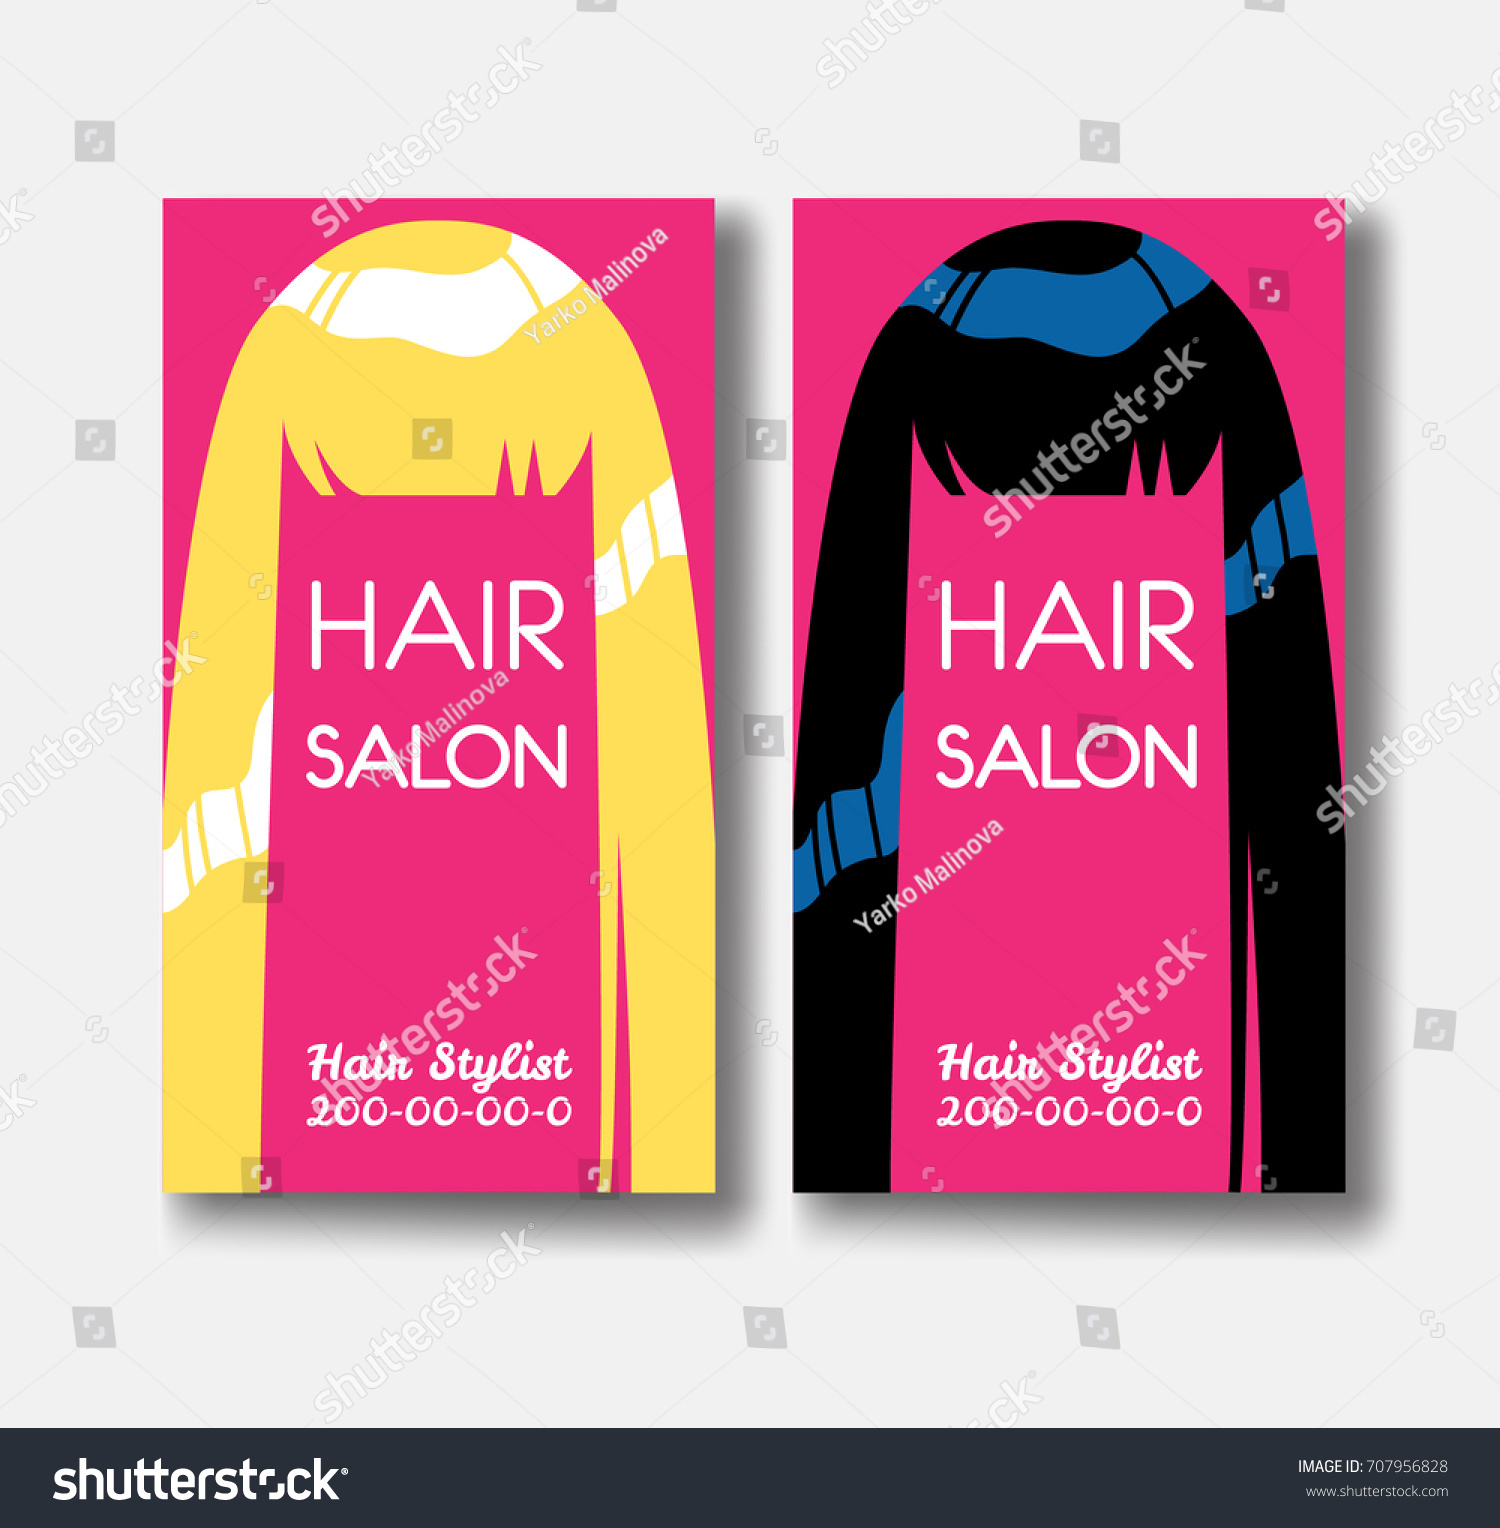 Hair Salon Business Card Templates Blonde Stock Illustration ...